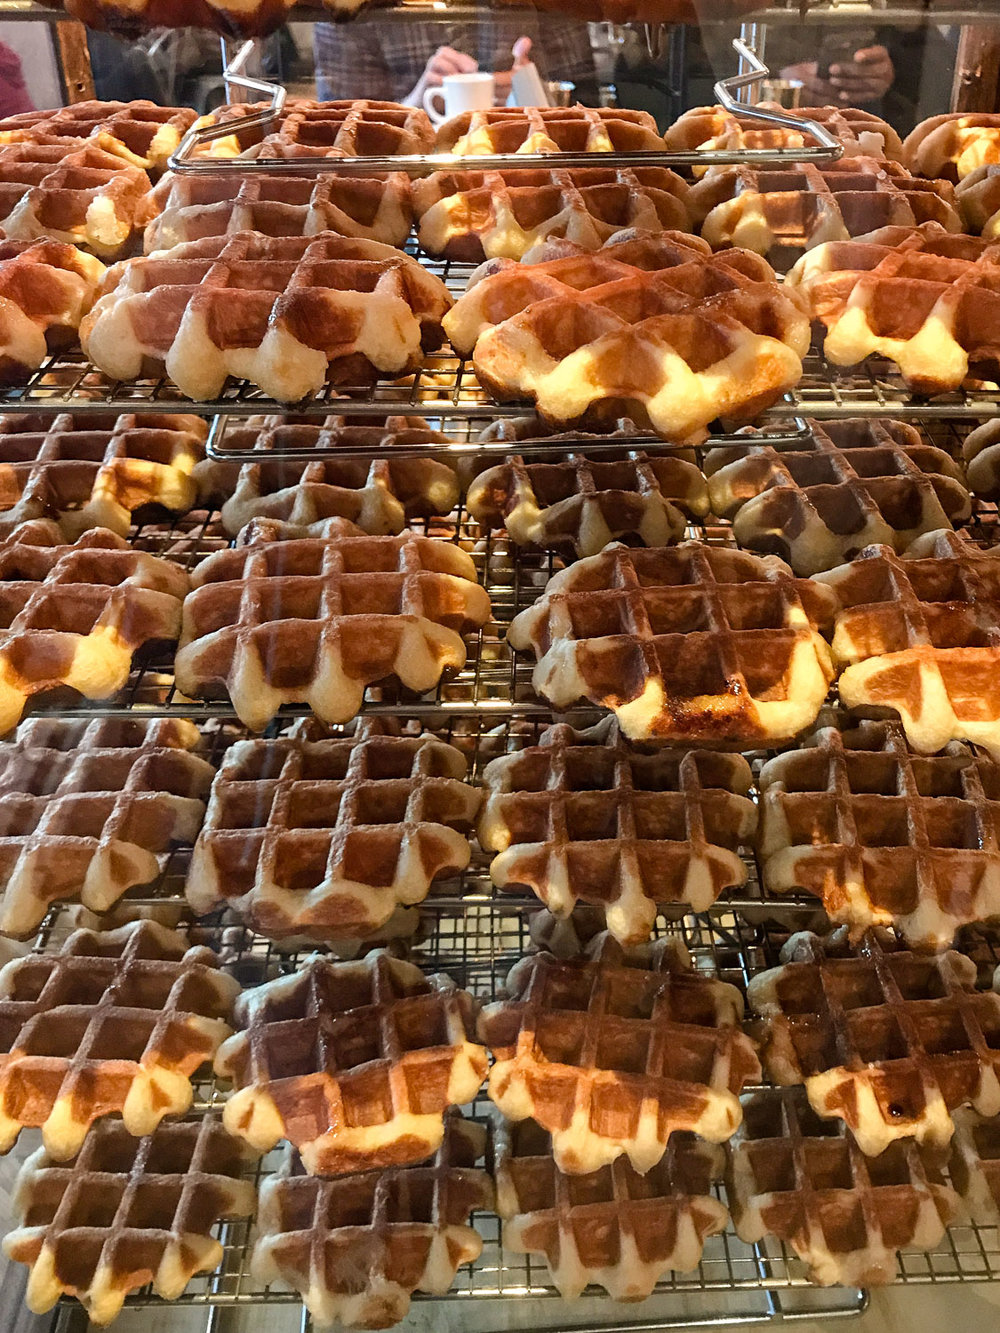 Breakfast waffles at Medina's Cafe, Vancouver Canada, November 2017